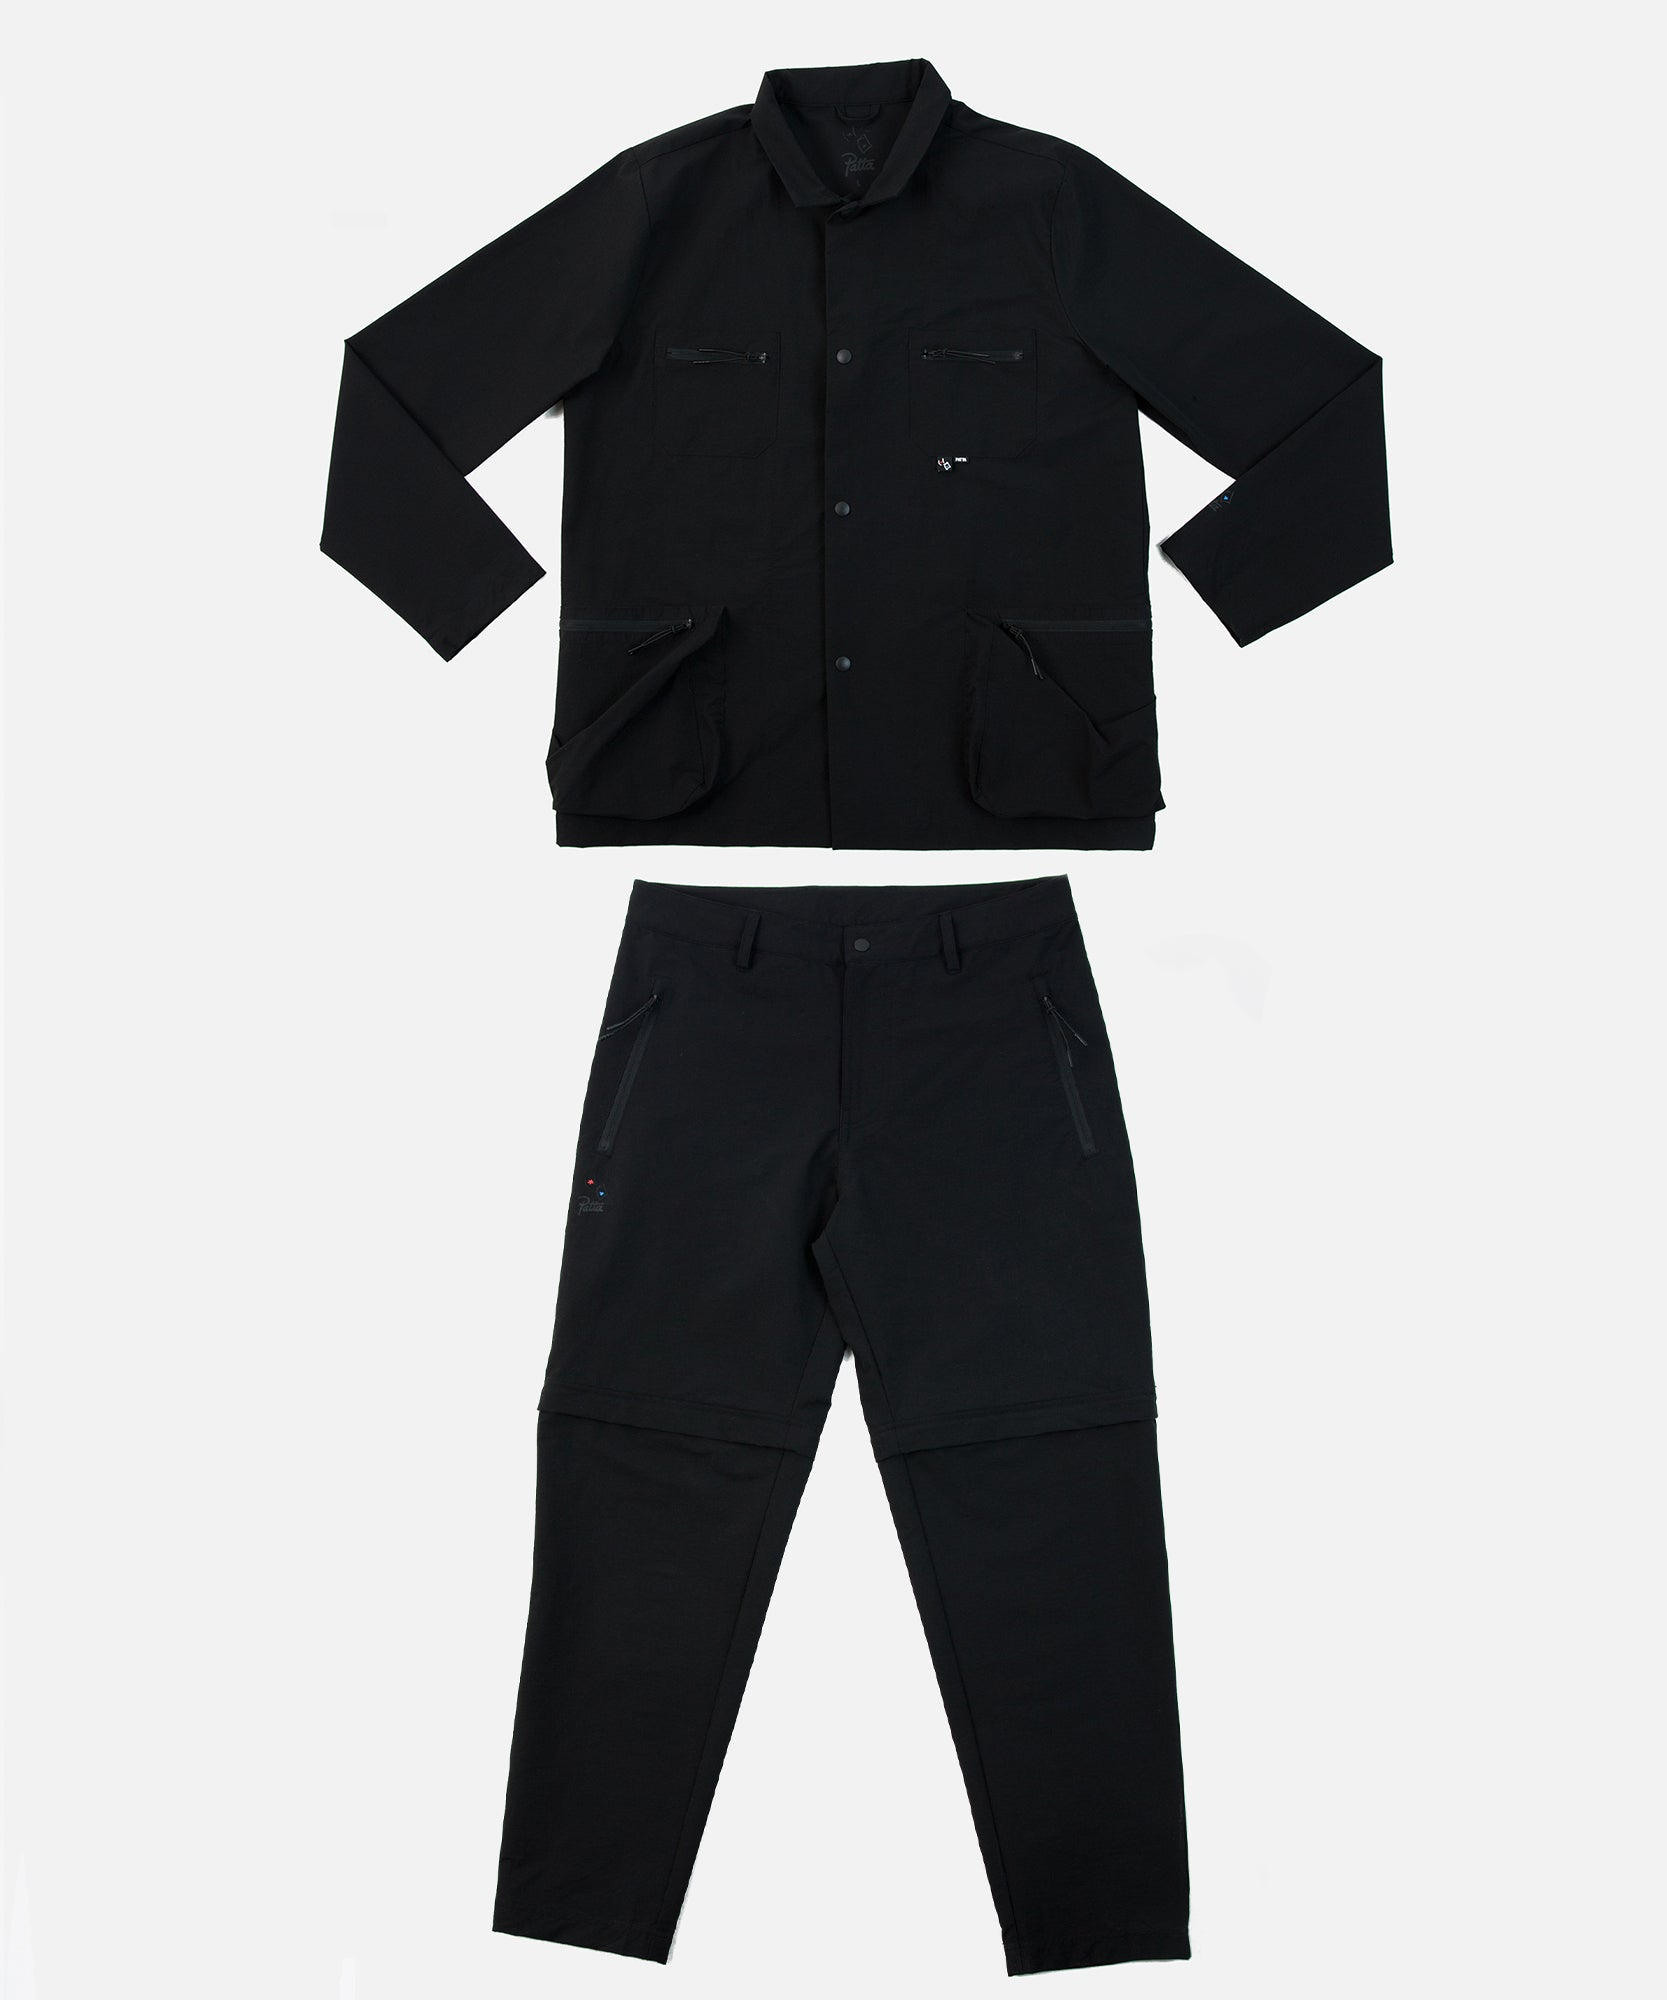 Bonne Suits x Patta Technical Two-Piece Suit (Black)